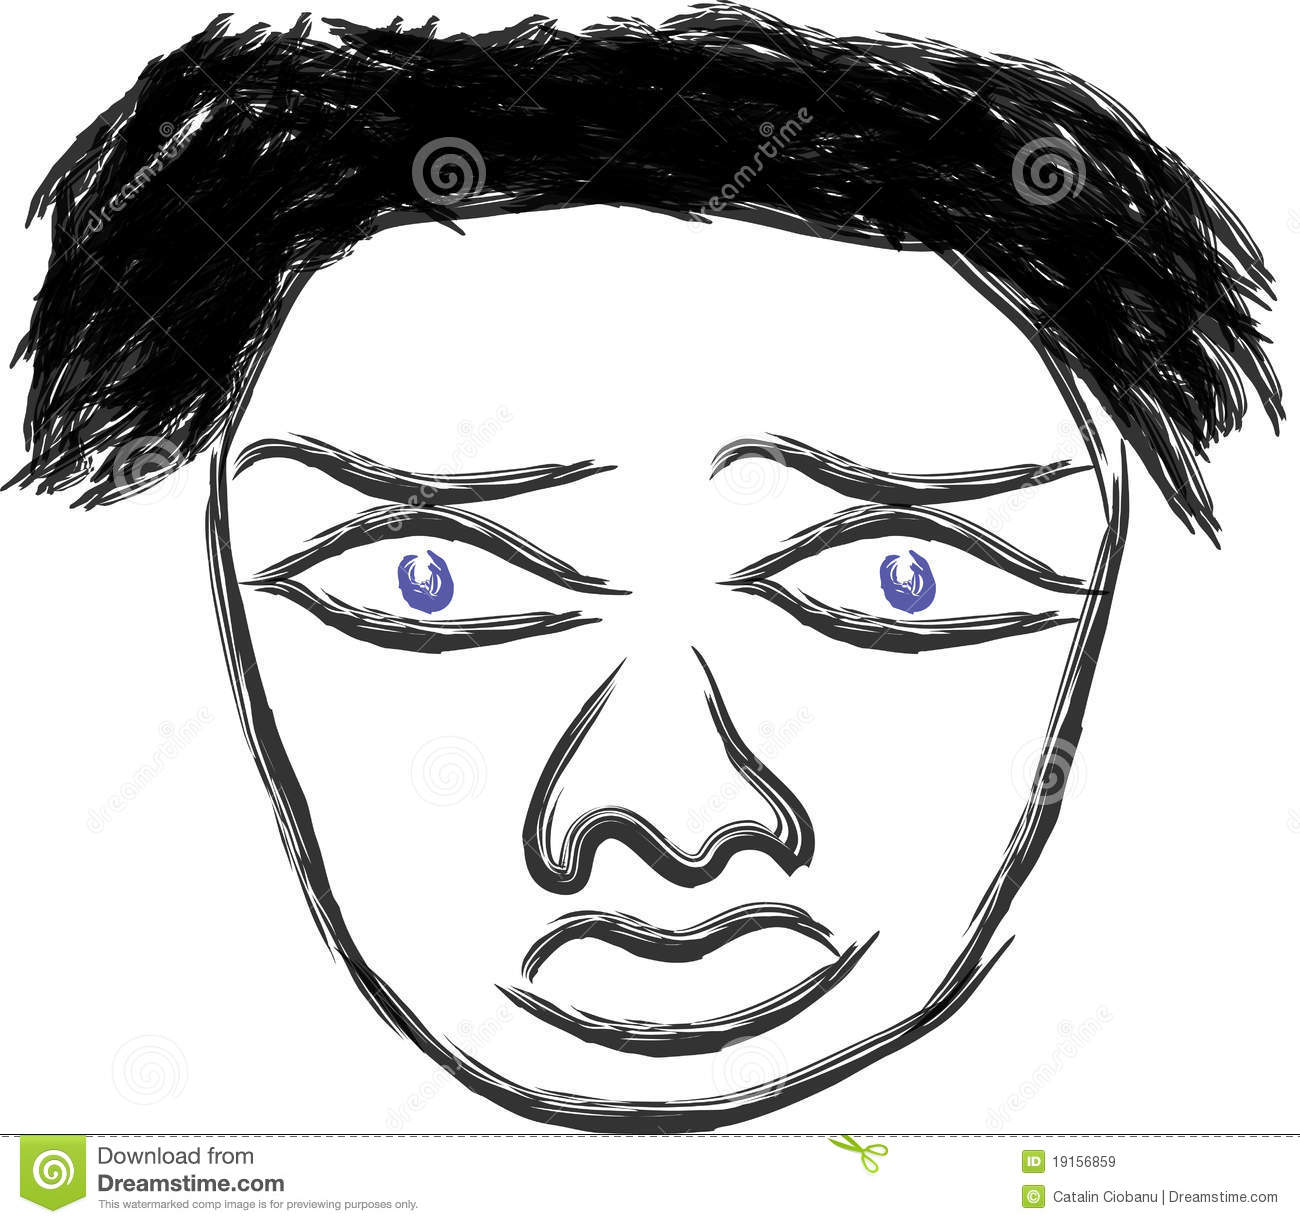 Scared face stock illustration. Image of fashion, keywords ...